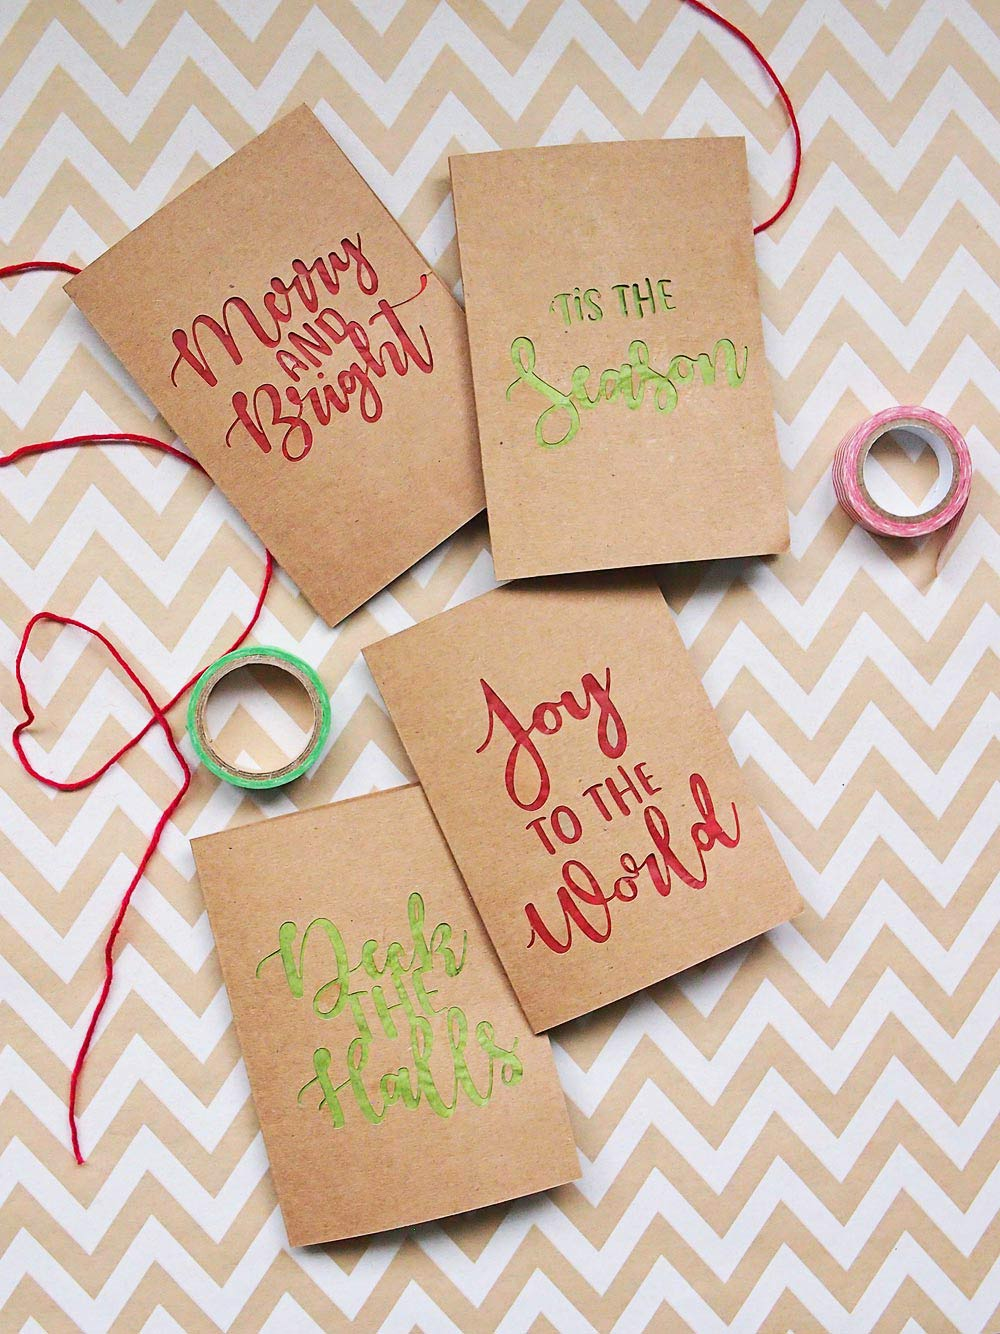 Handmade Paper Cutout Holiday Cards - DIY gift ideas